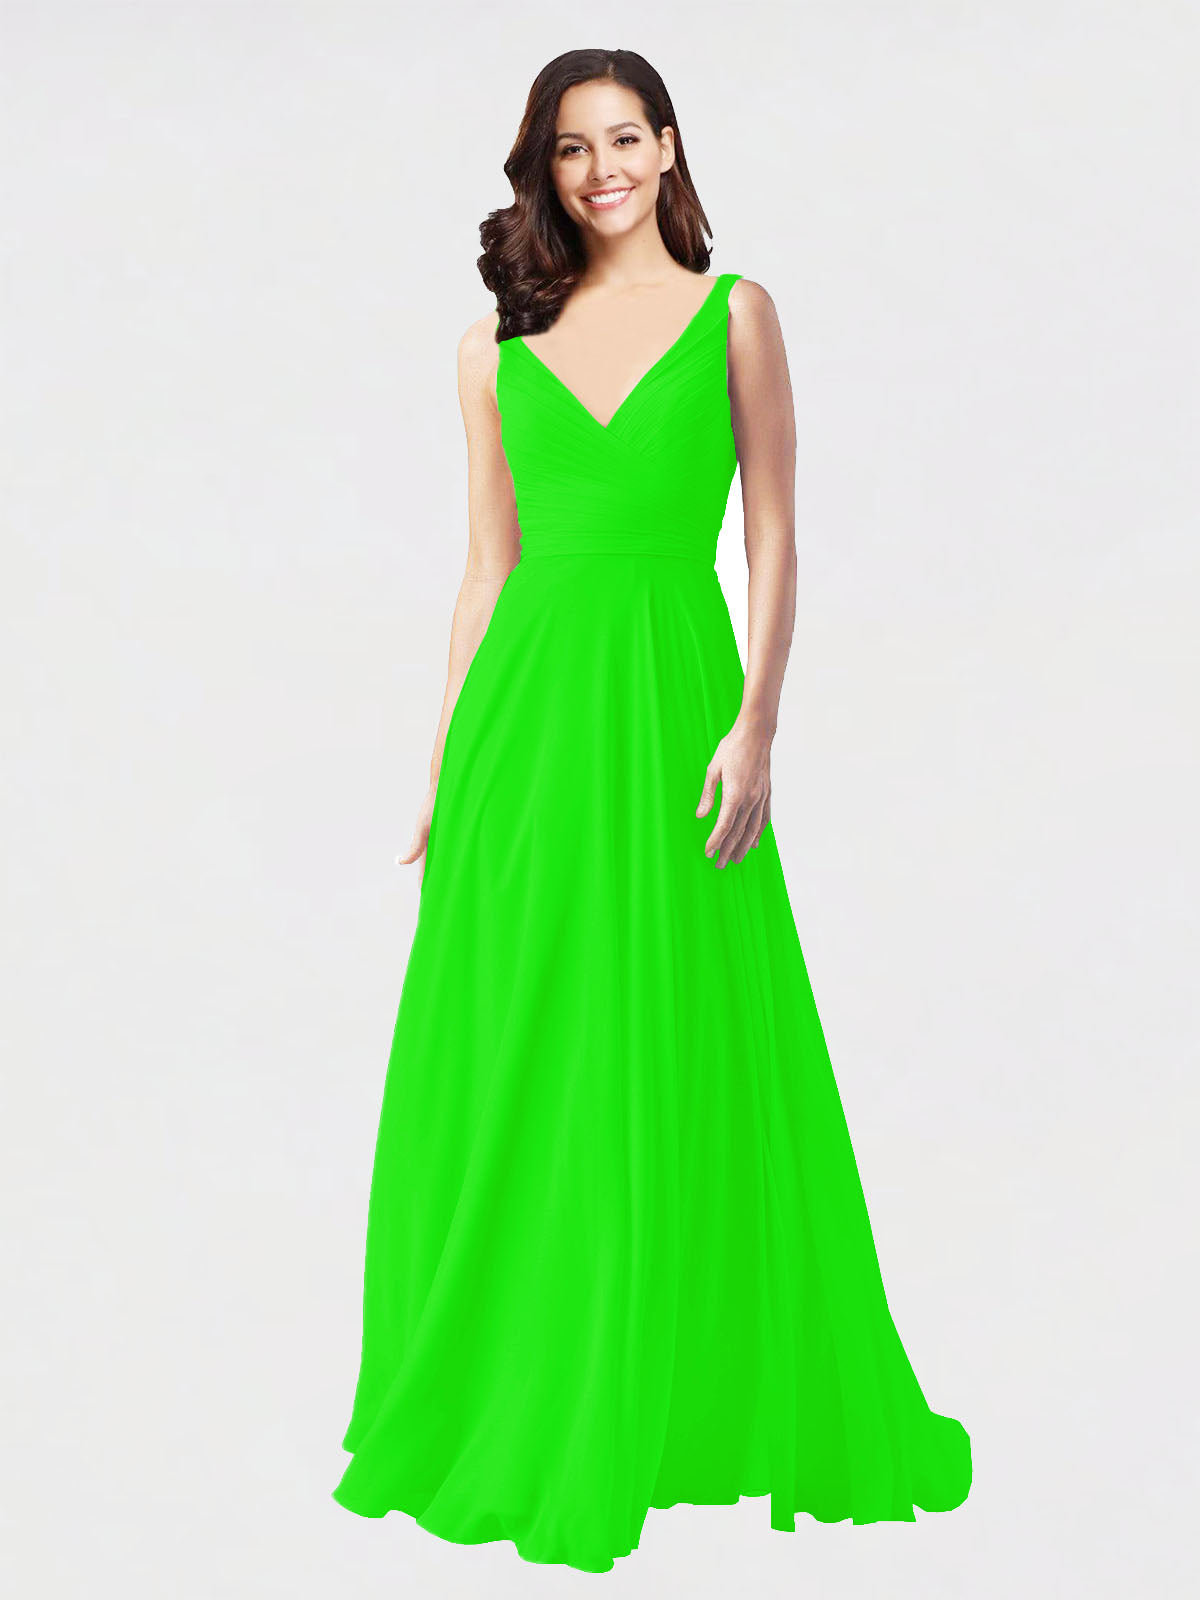 Long A-Line V-Neck Sleeveless Lime Green Chiffon Bridesmaid Dress Bernice